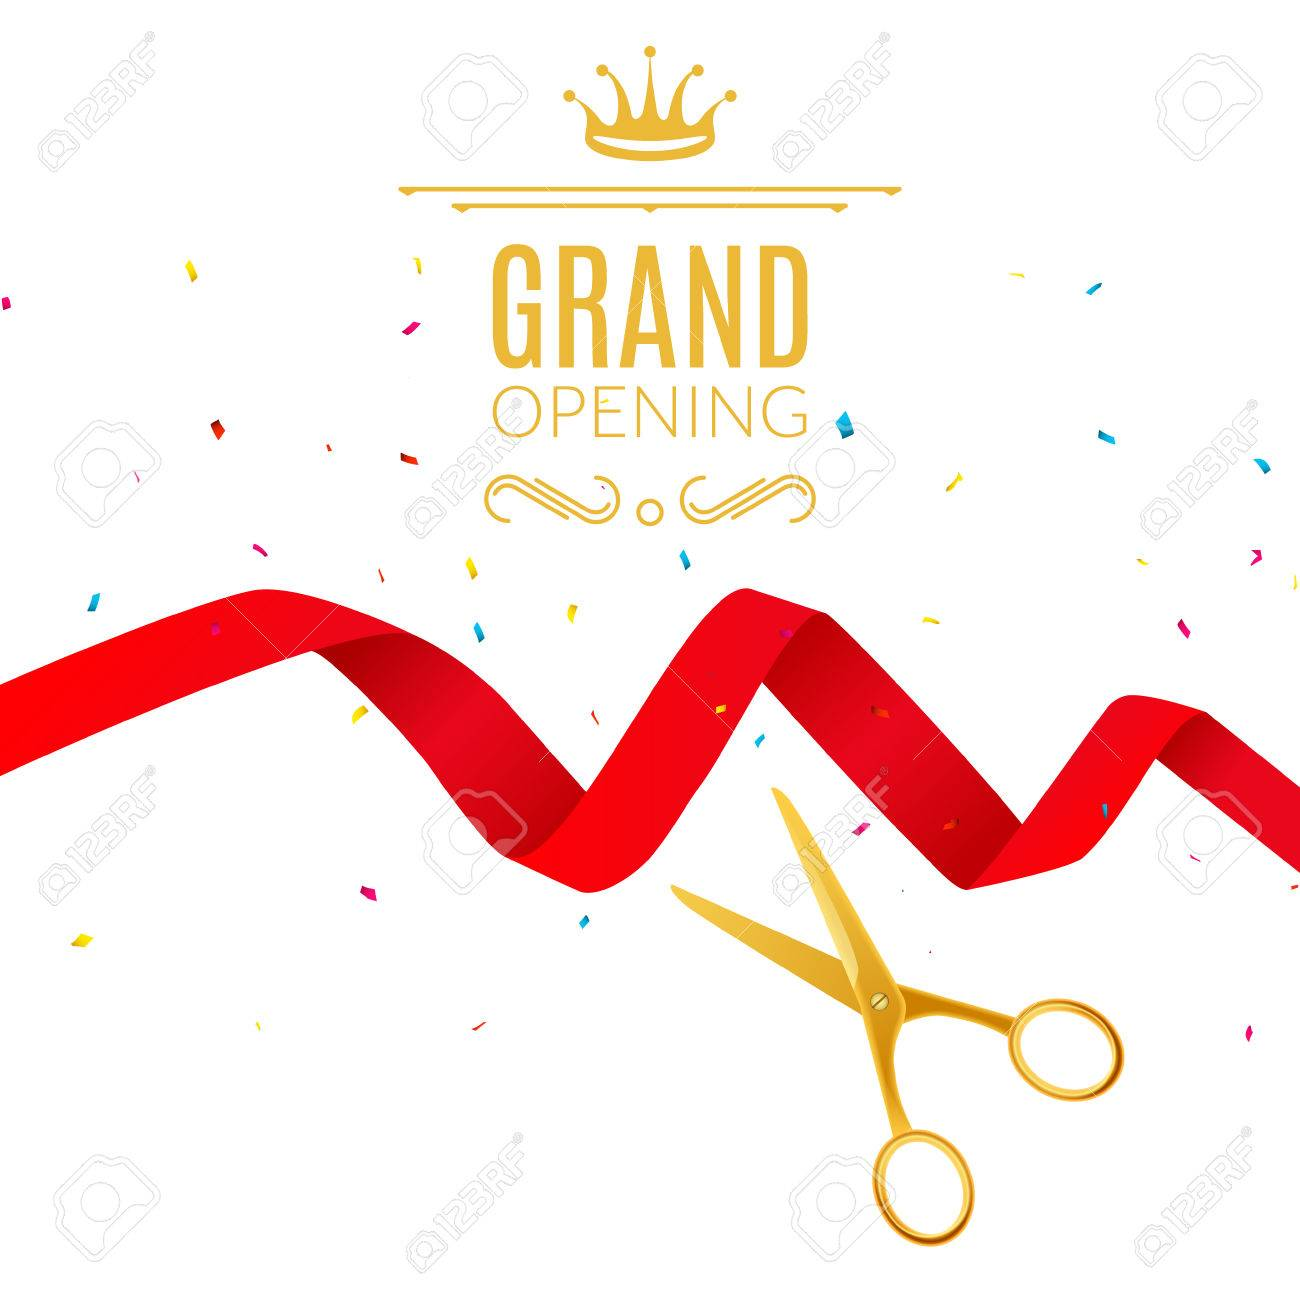 grand opening design template with ribbon and scissors grand open ribbon cut concept stock vector